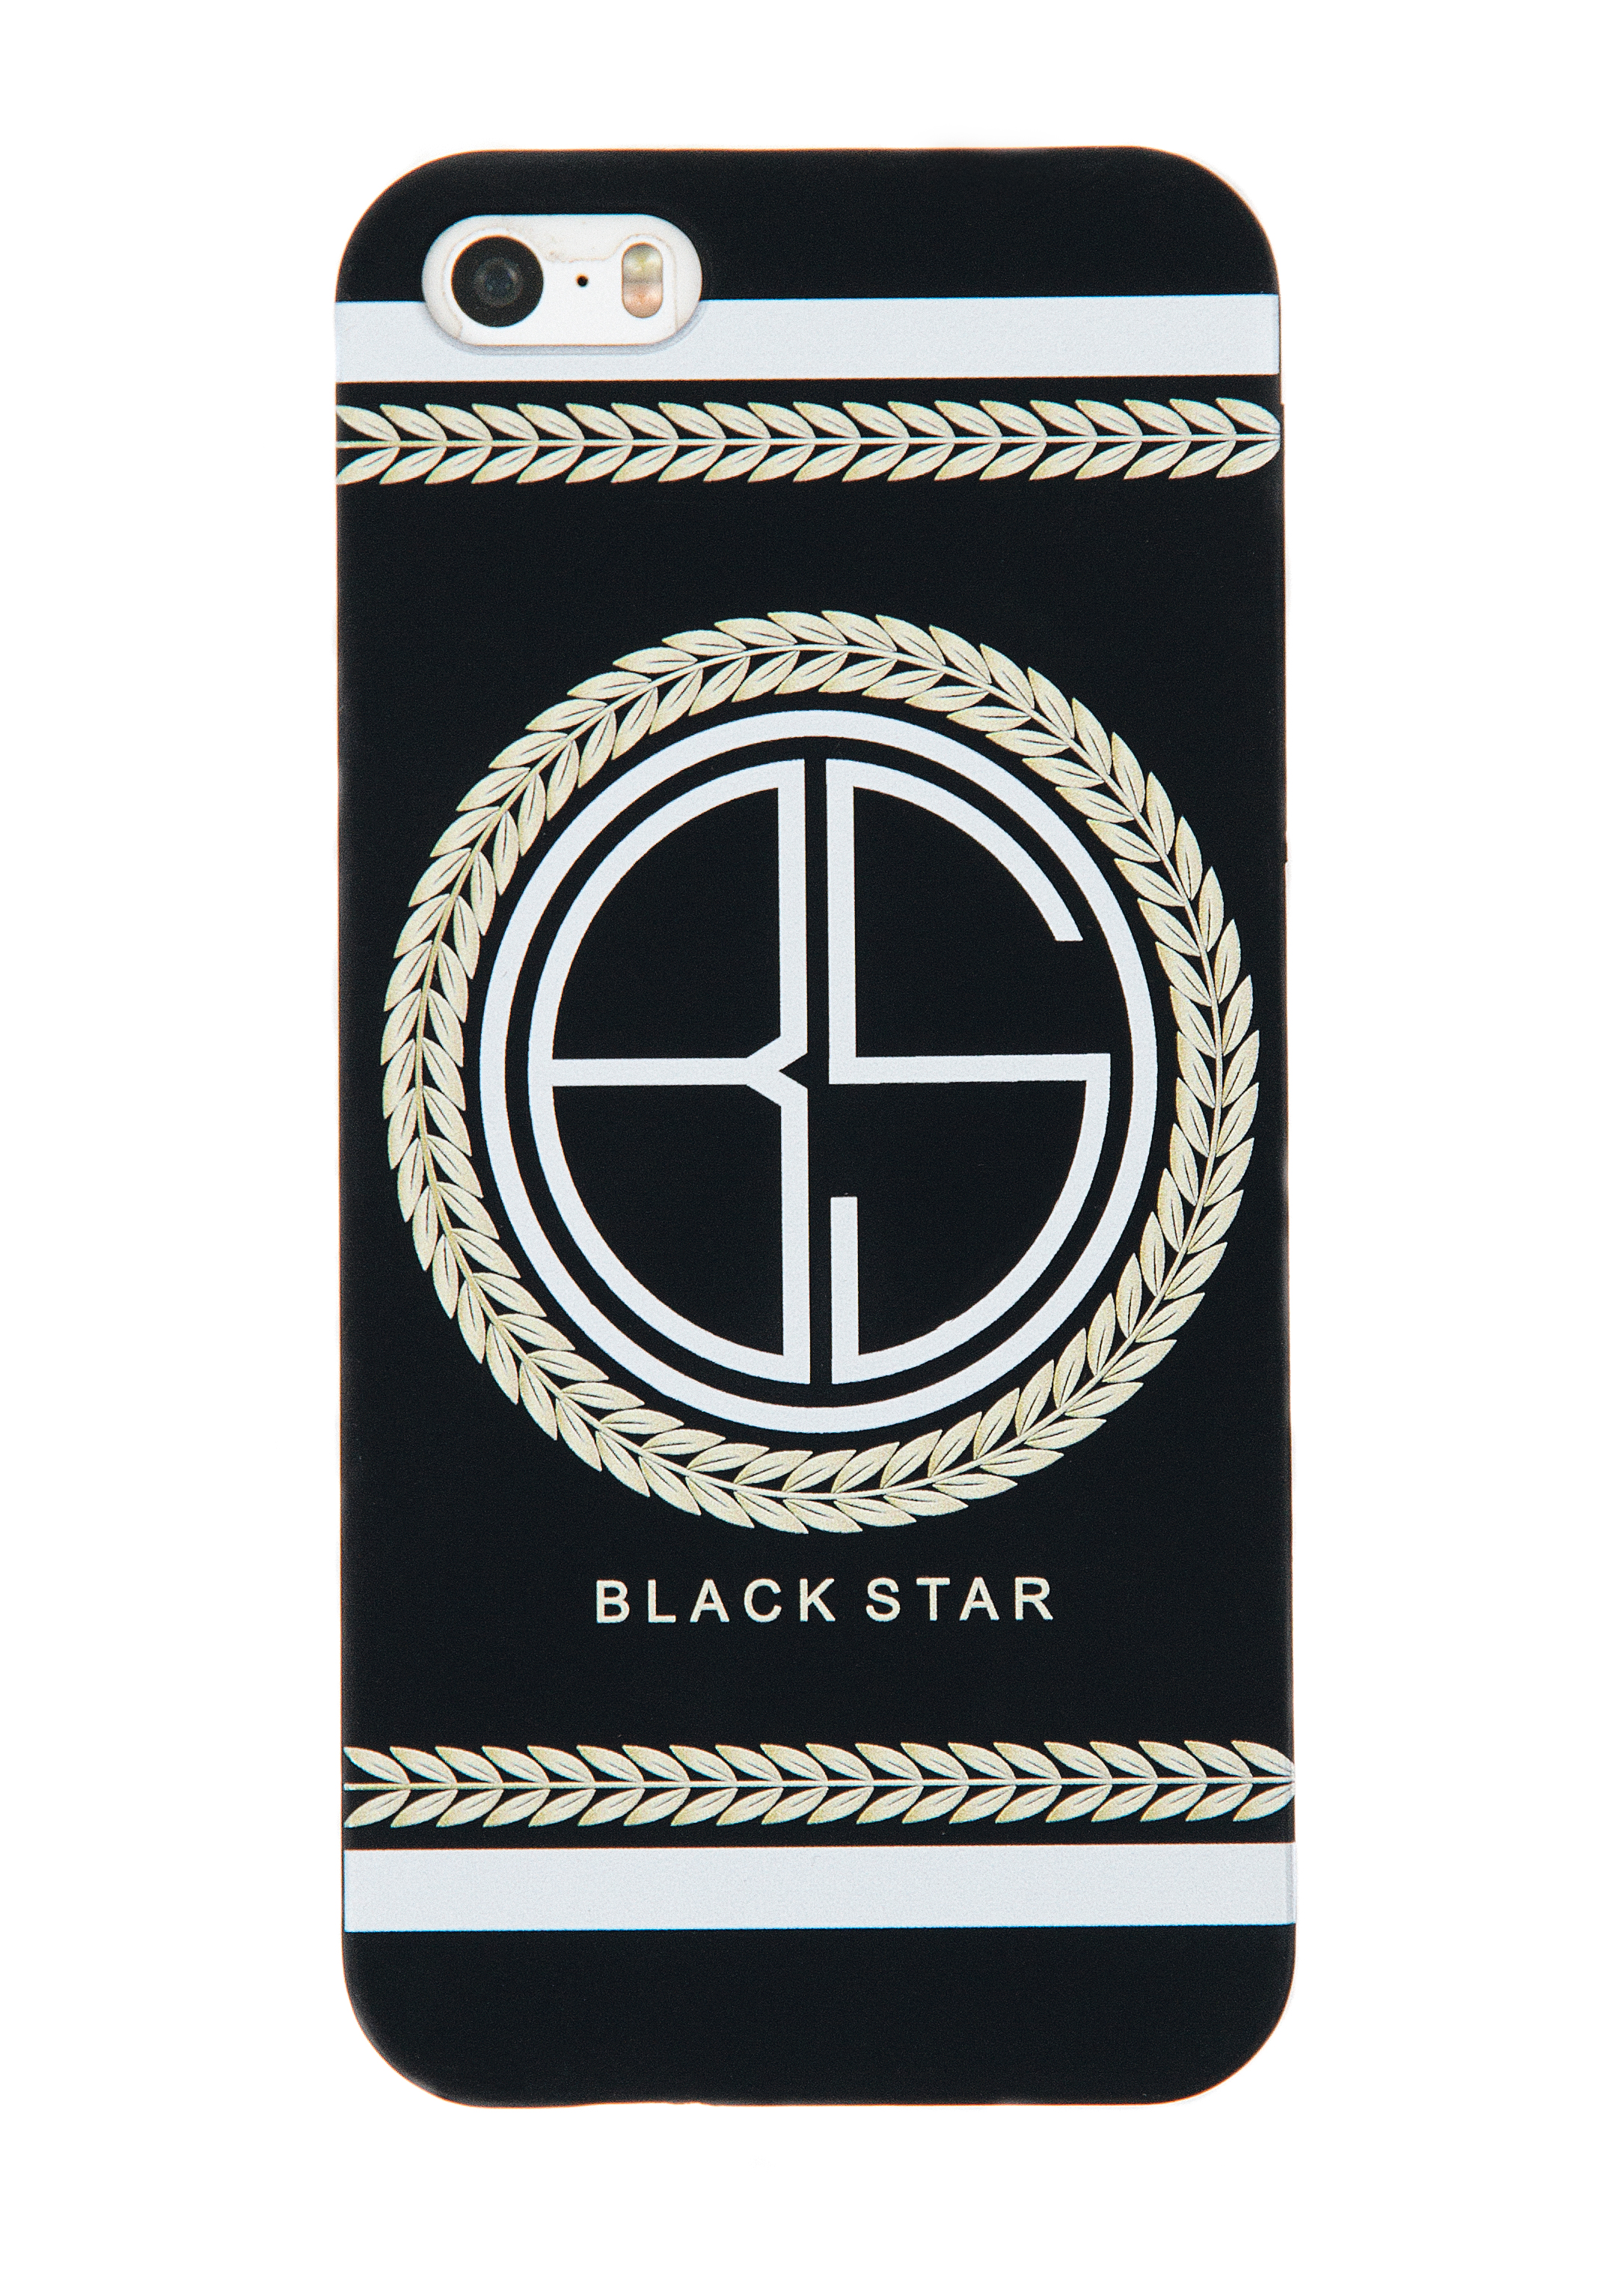 Чехол для iPhone 5/5s/6/6+ Wreath Logo от Black Star